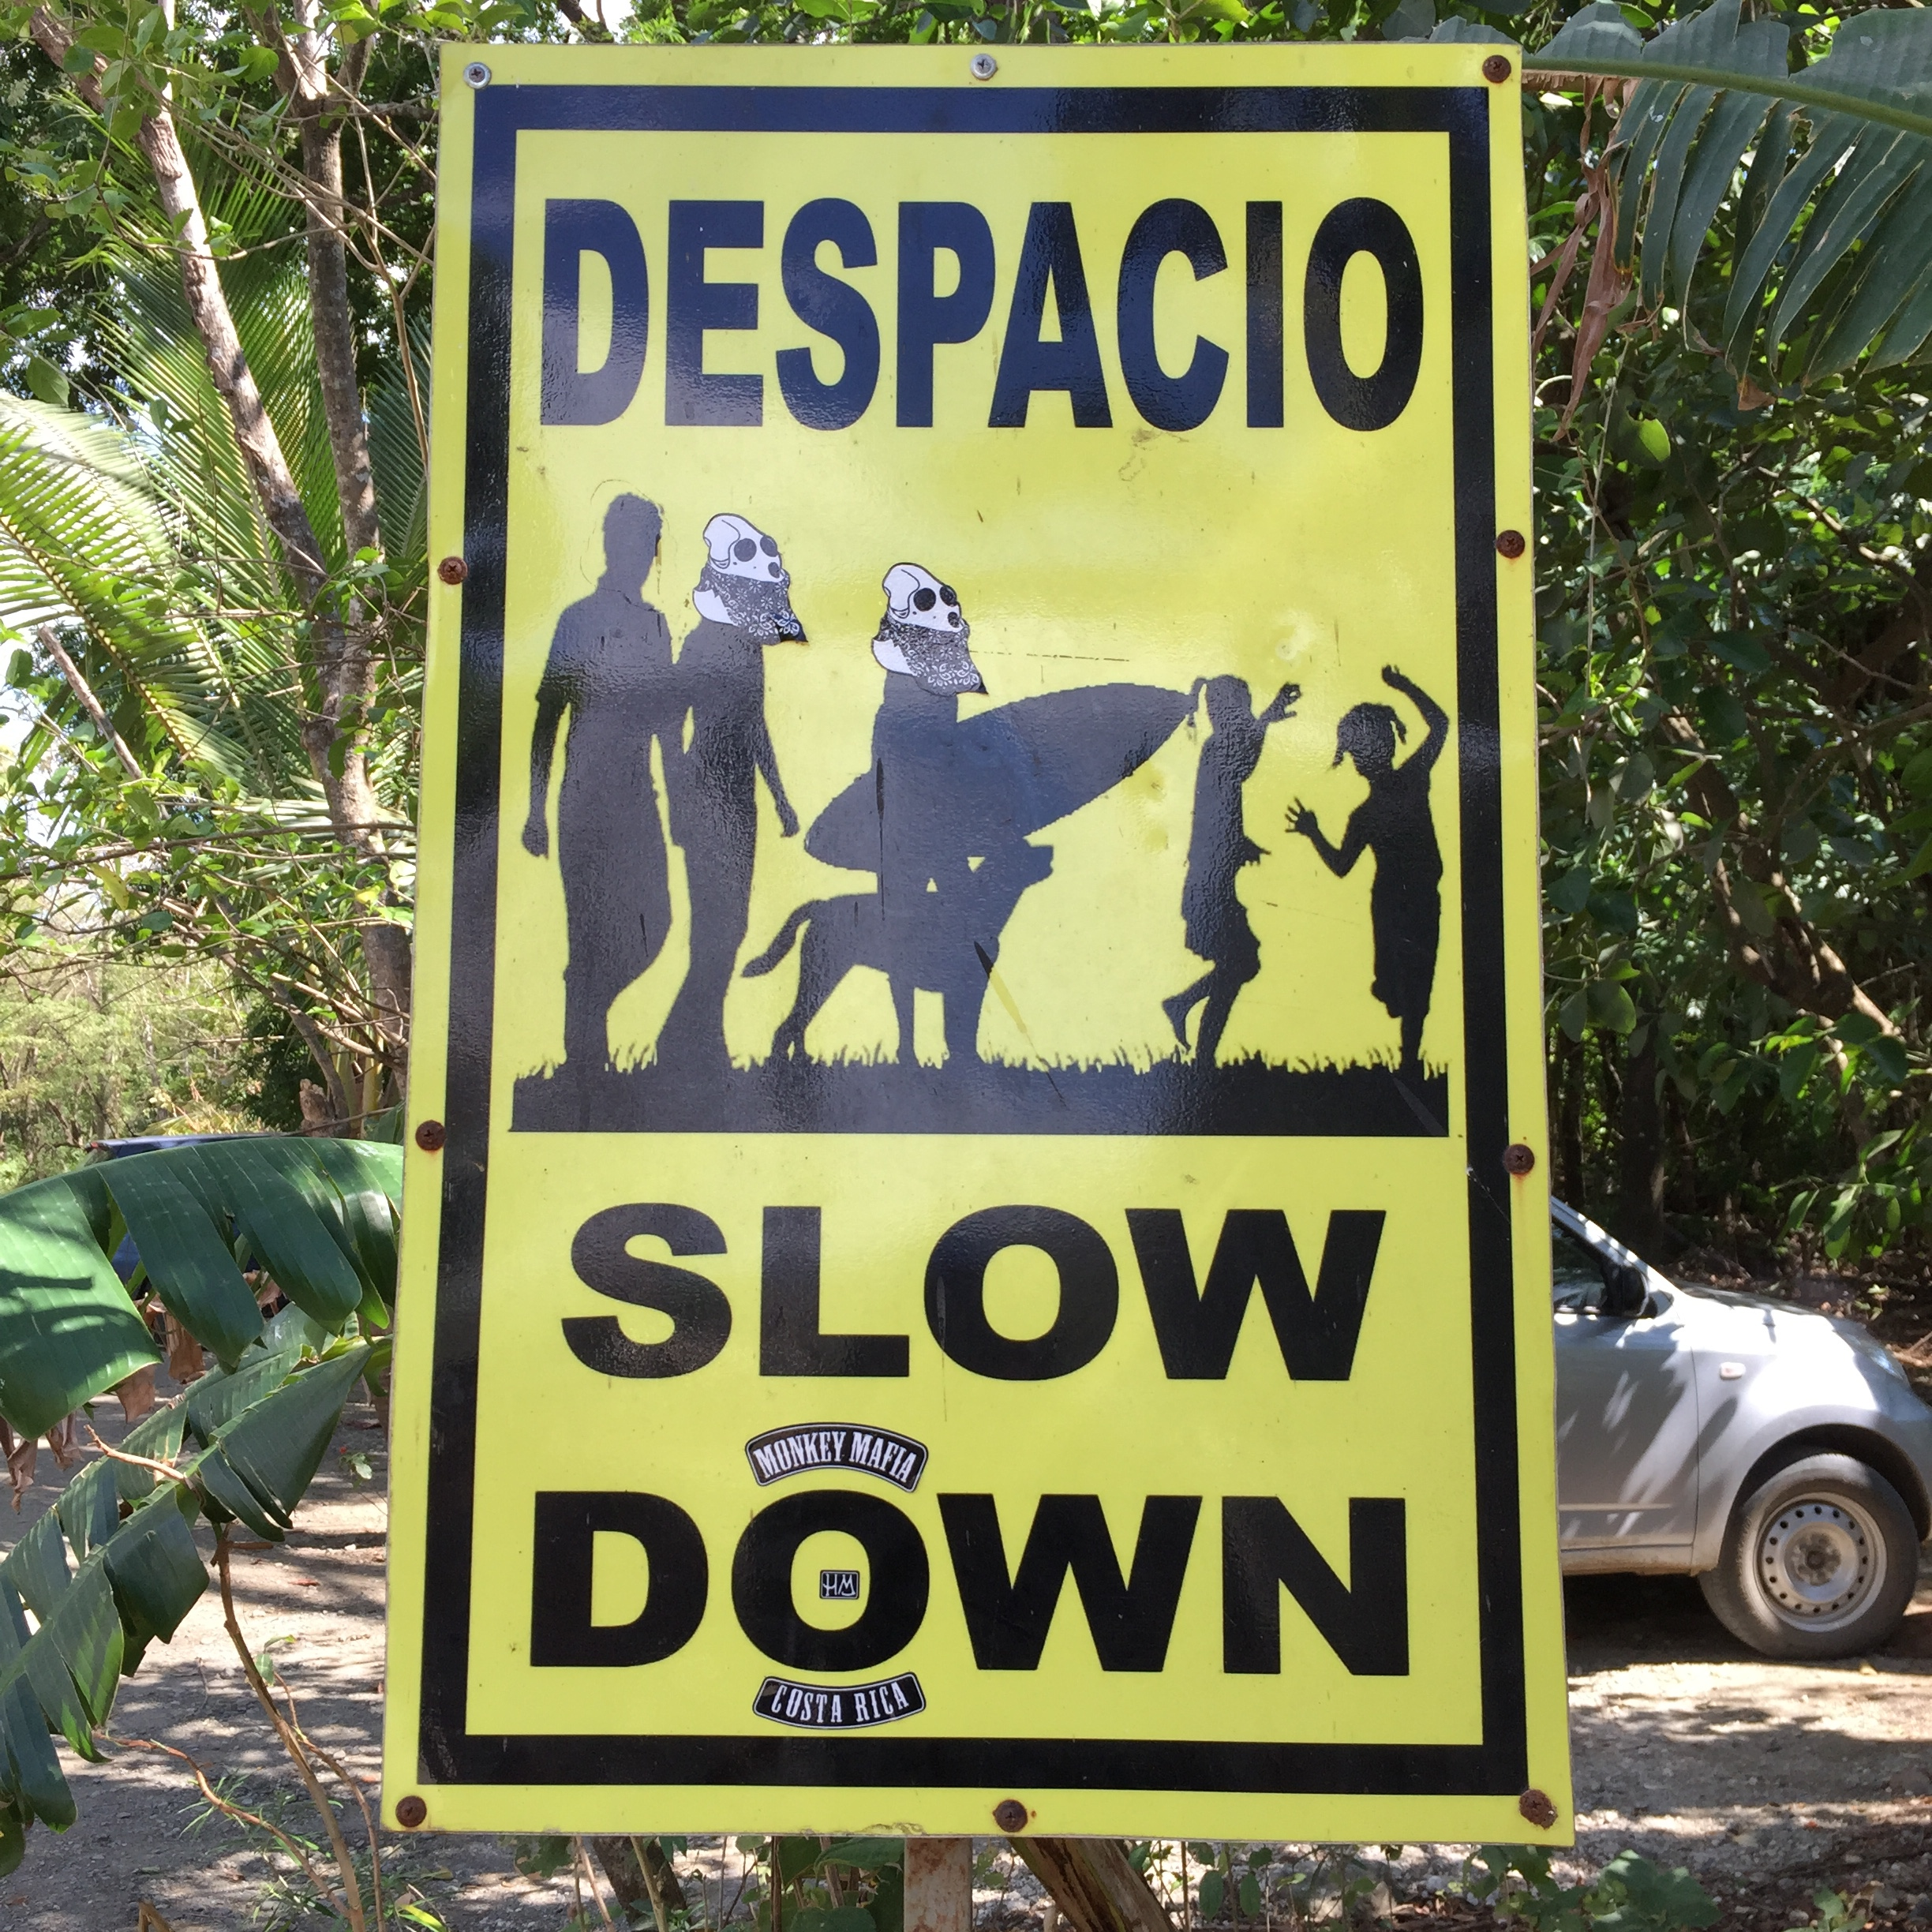 Despacio: Slow Down